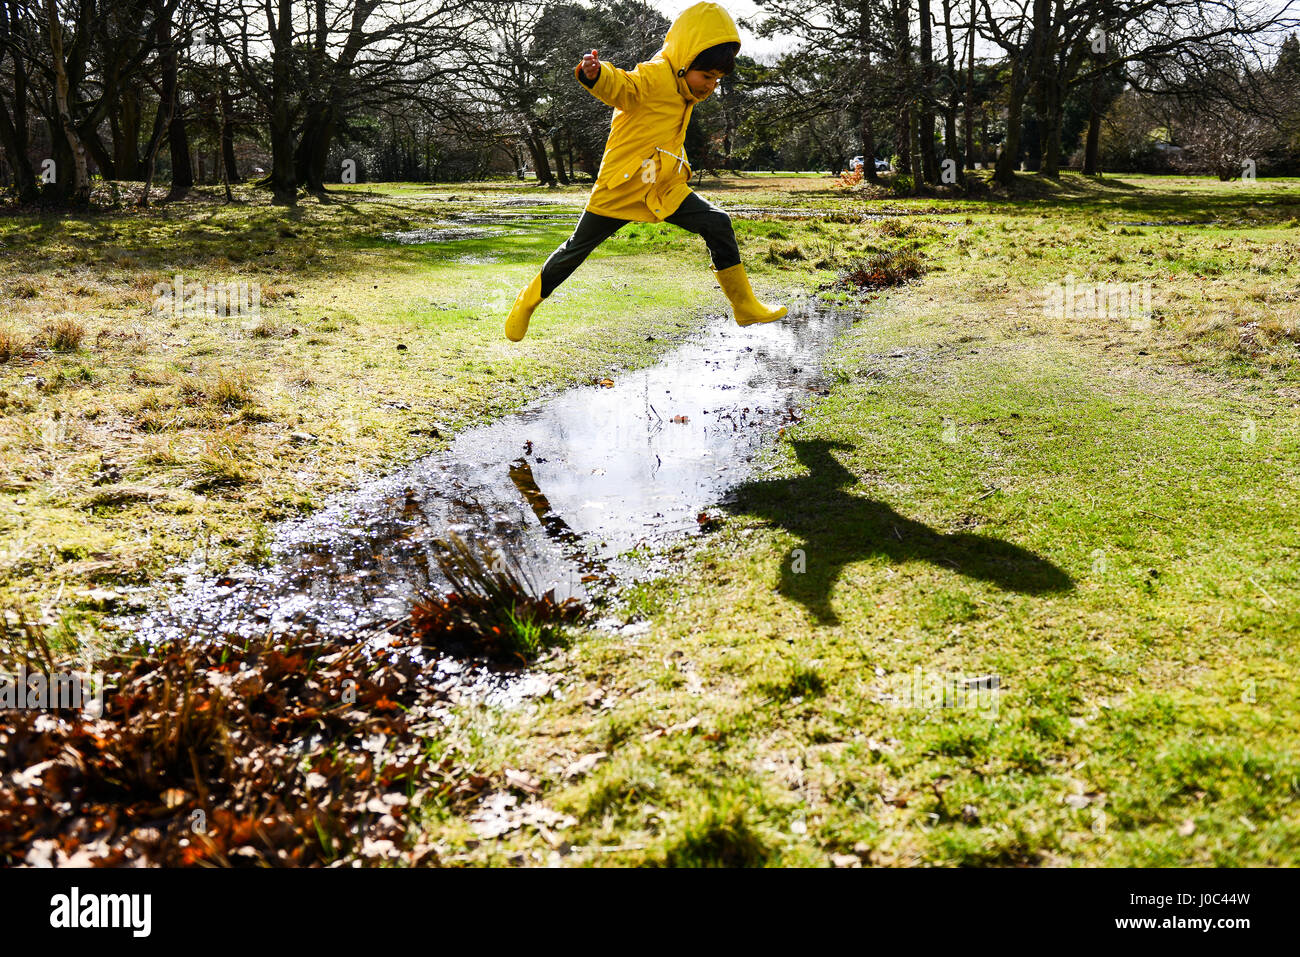 Boy in yellow anorak jumping over puddle in park - Stock Image